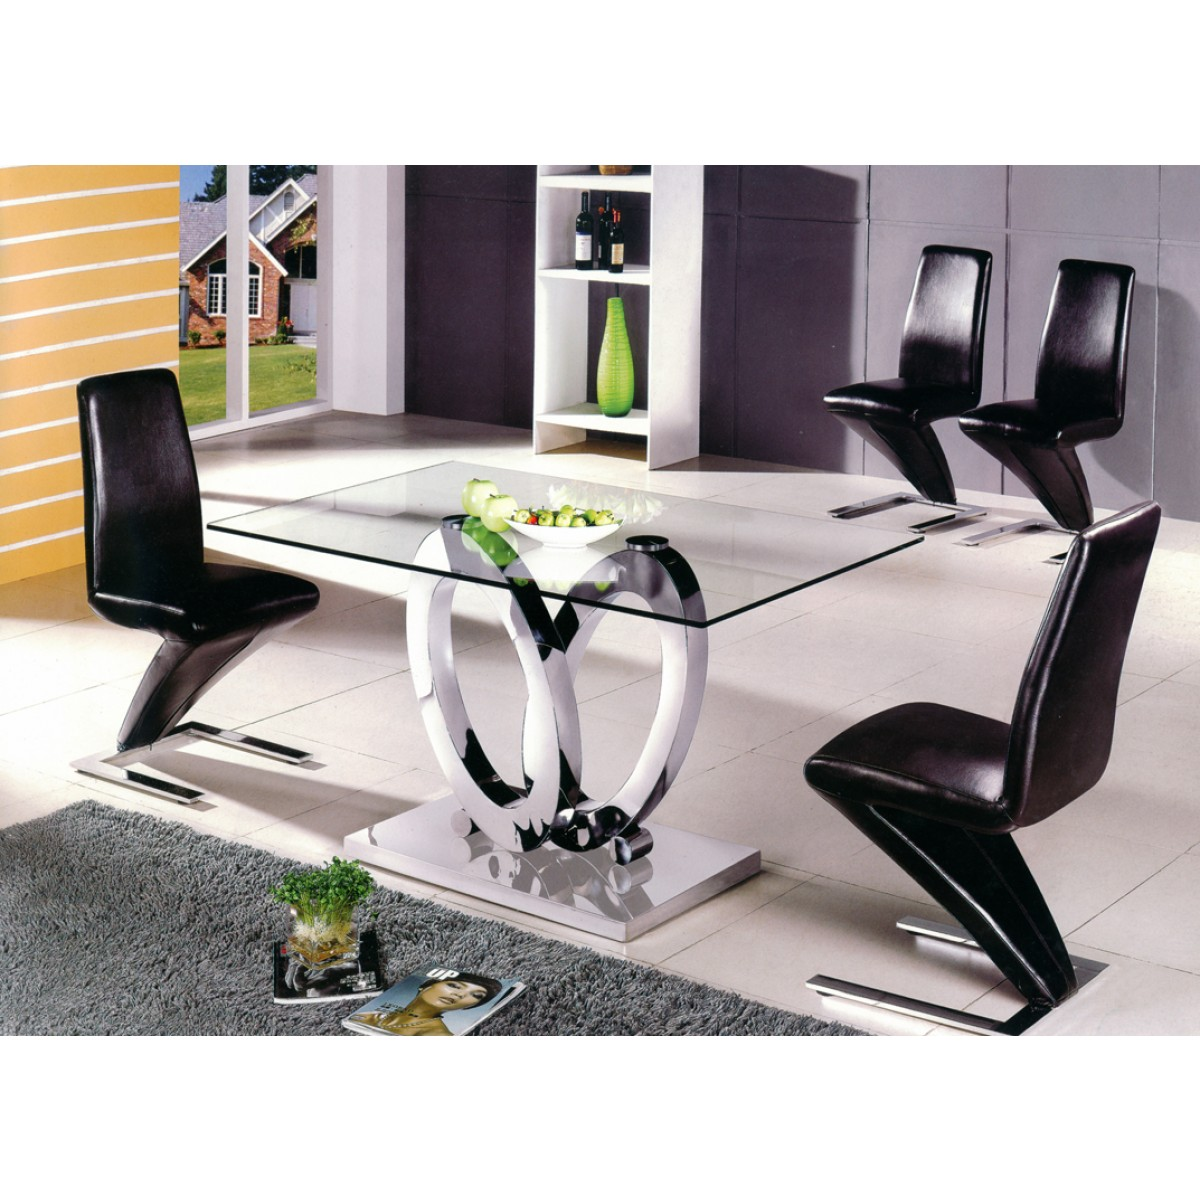 Table manger design ellipse taille au choix tables for Table salle a manger design pied central